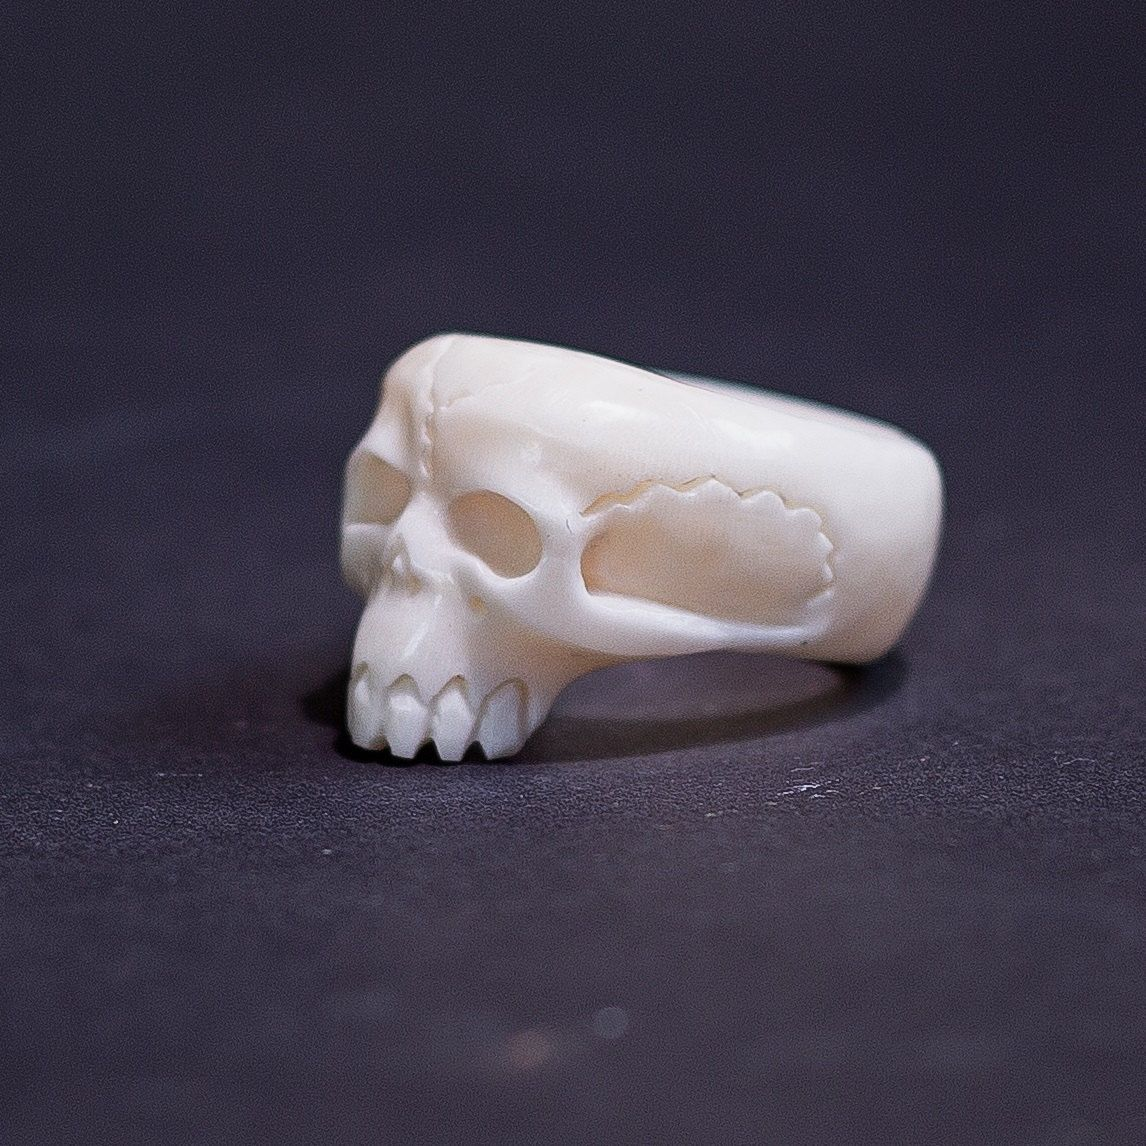 Human Skull Ring Carved Bone Ring Gothic Jewelry Buffalo Bone Carving Cool Mens Rings Taxidermy Cool Rings For Men Bone Ring Gothic Jewelry Rings